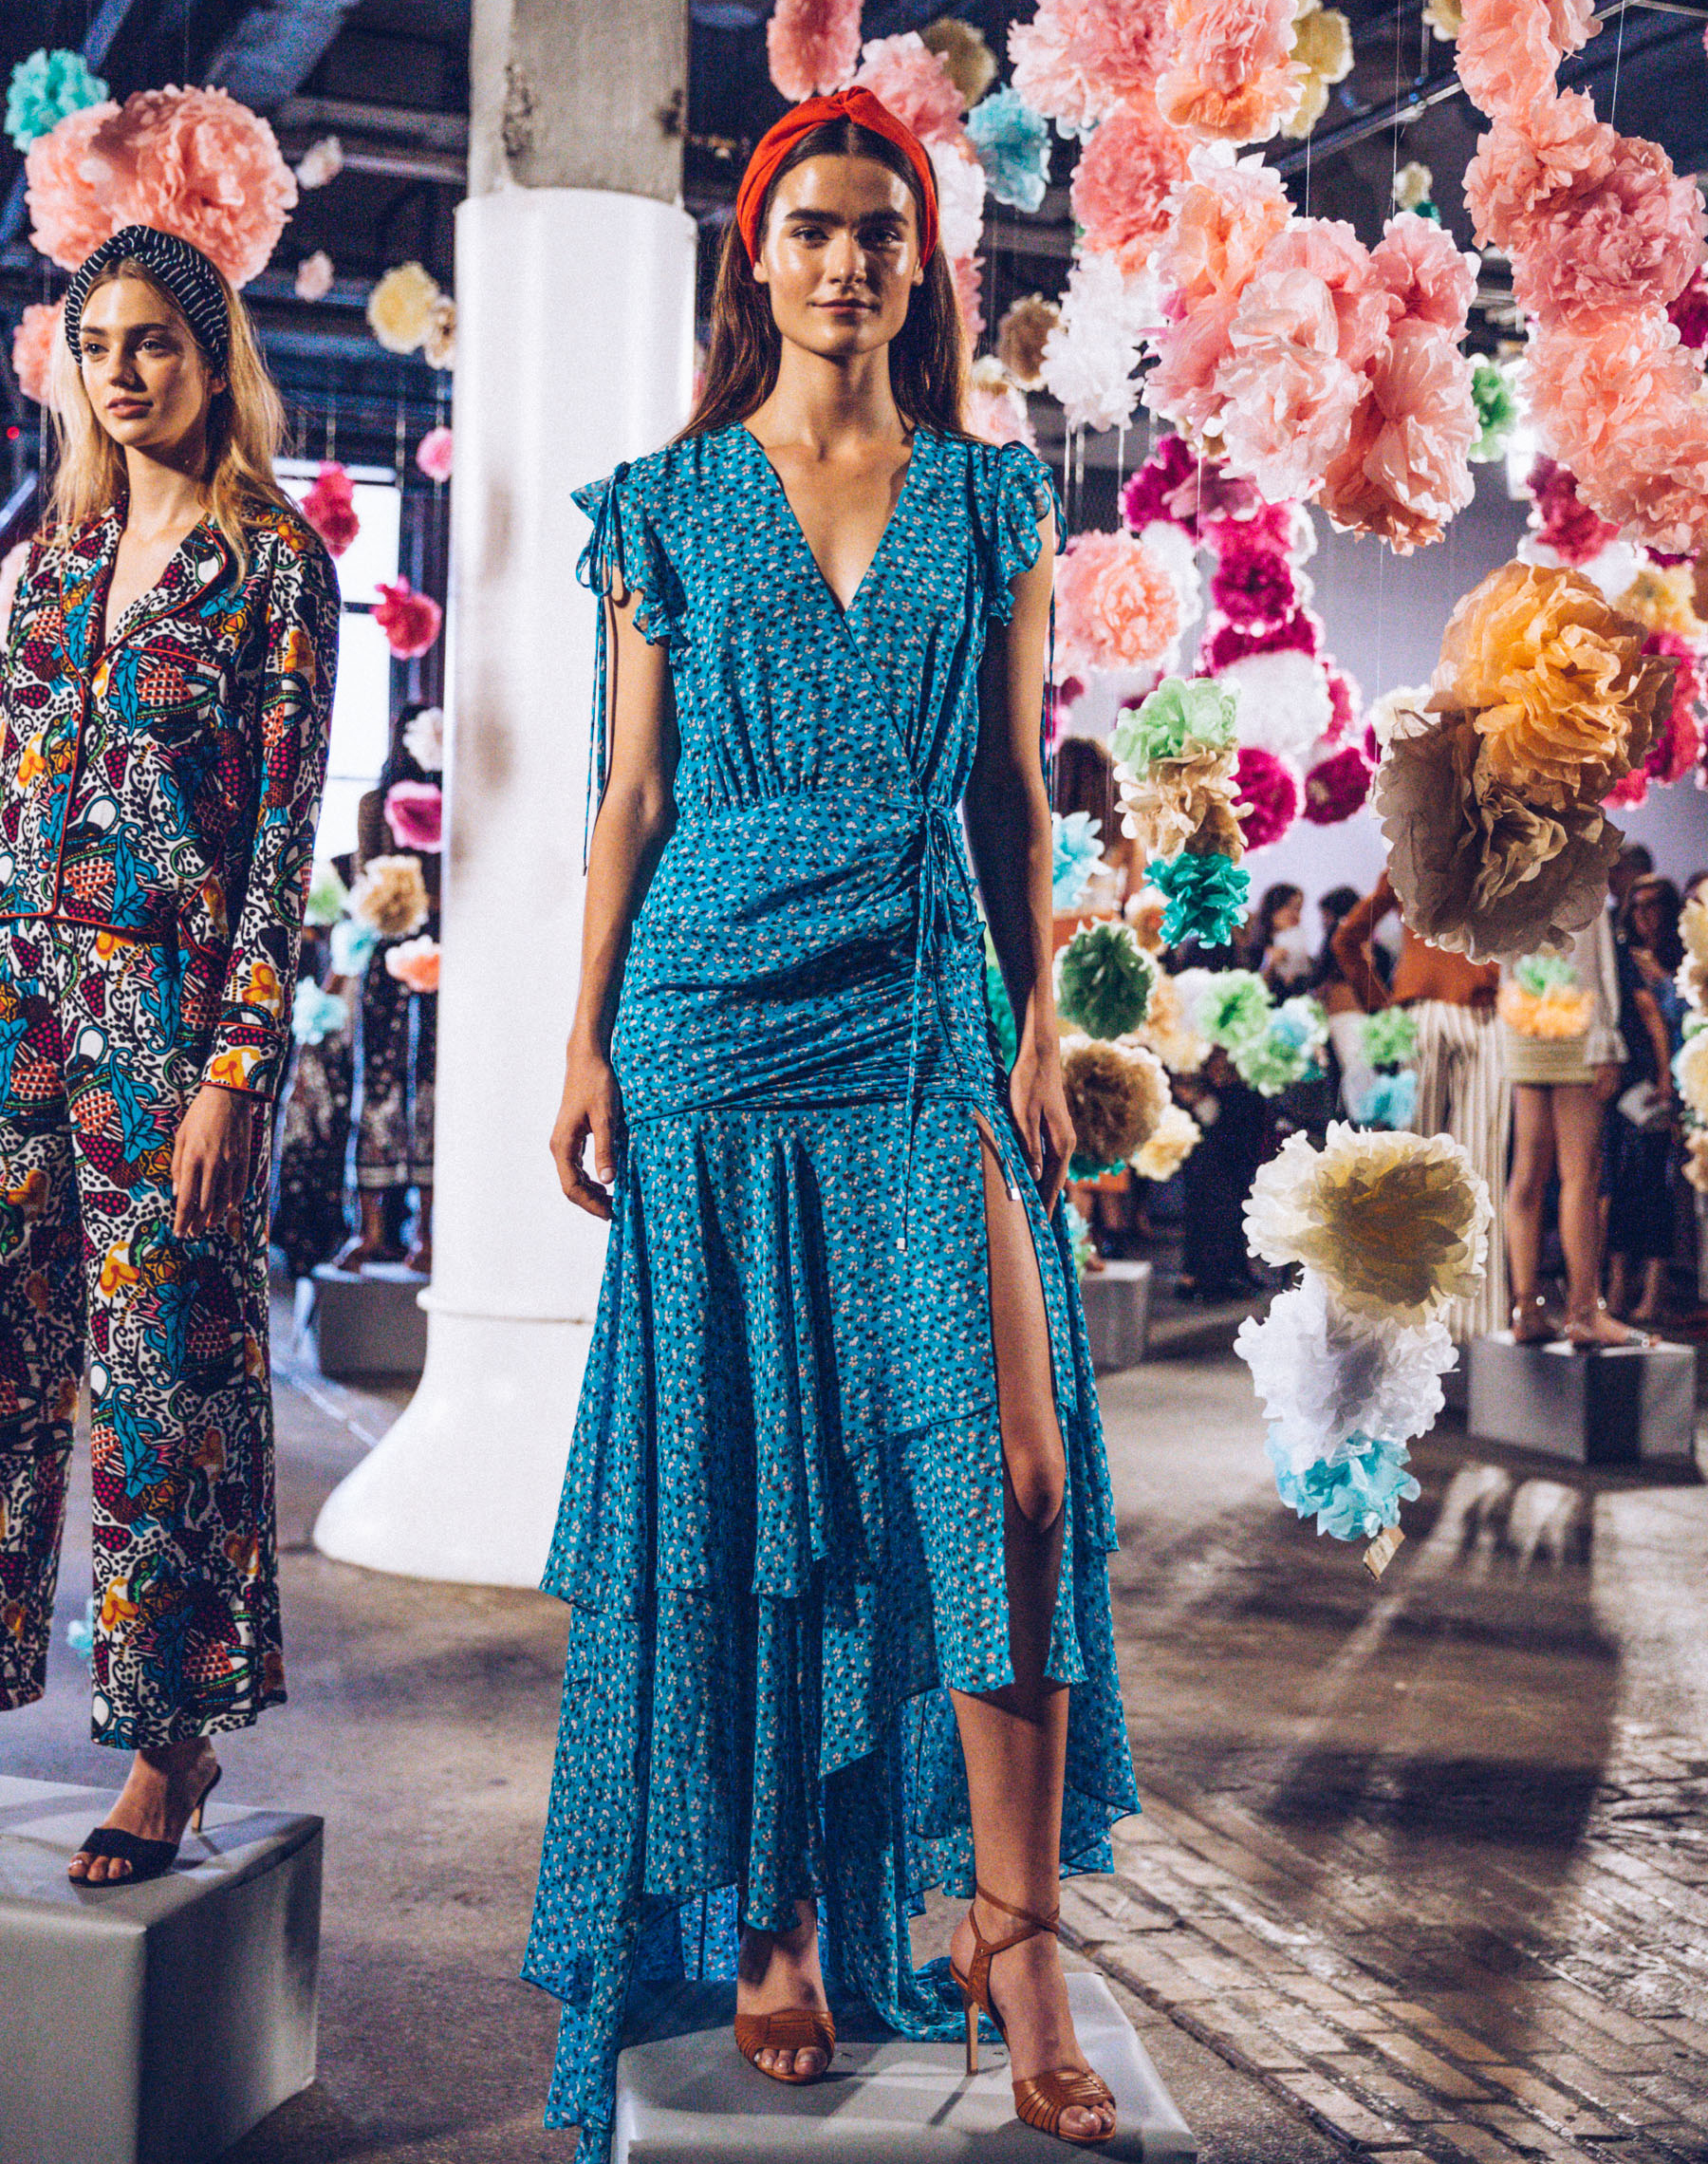 Spring Fashion Trends to Get Started On Now // Notjessfashion.com // New York Fashion Week preview, Spring 2018 fashion trends, top spring trends